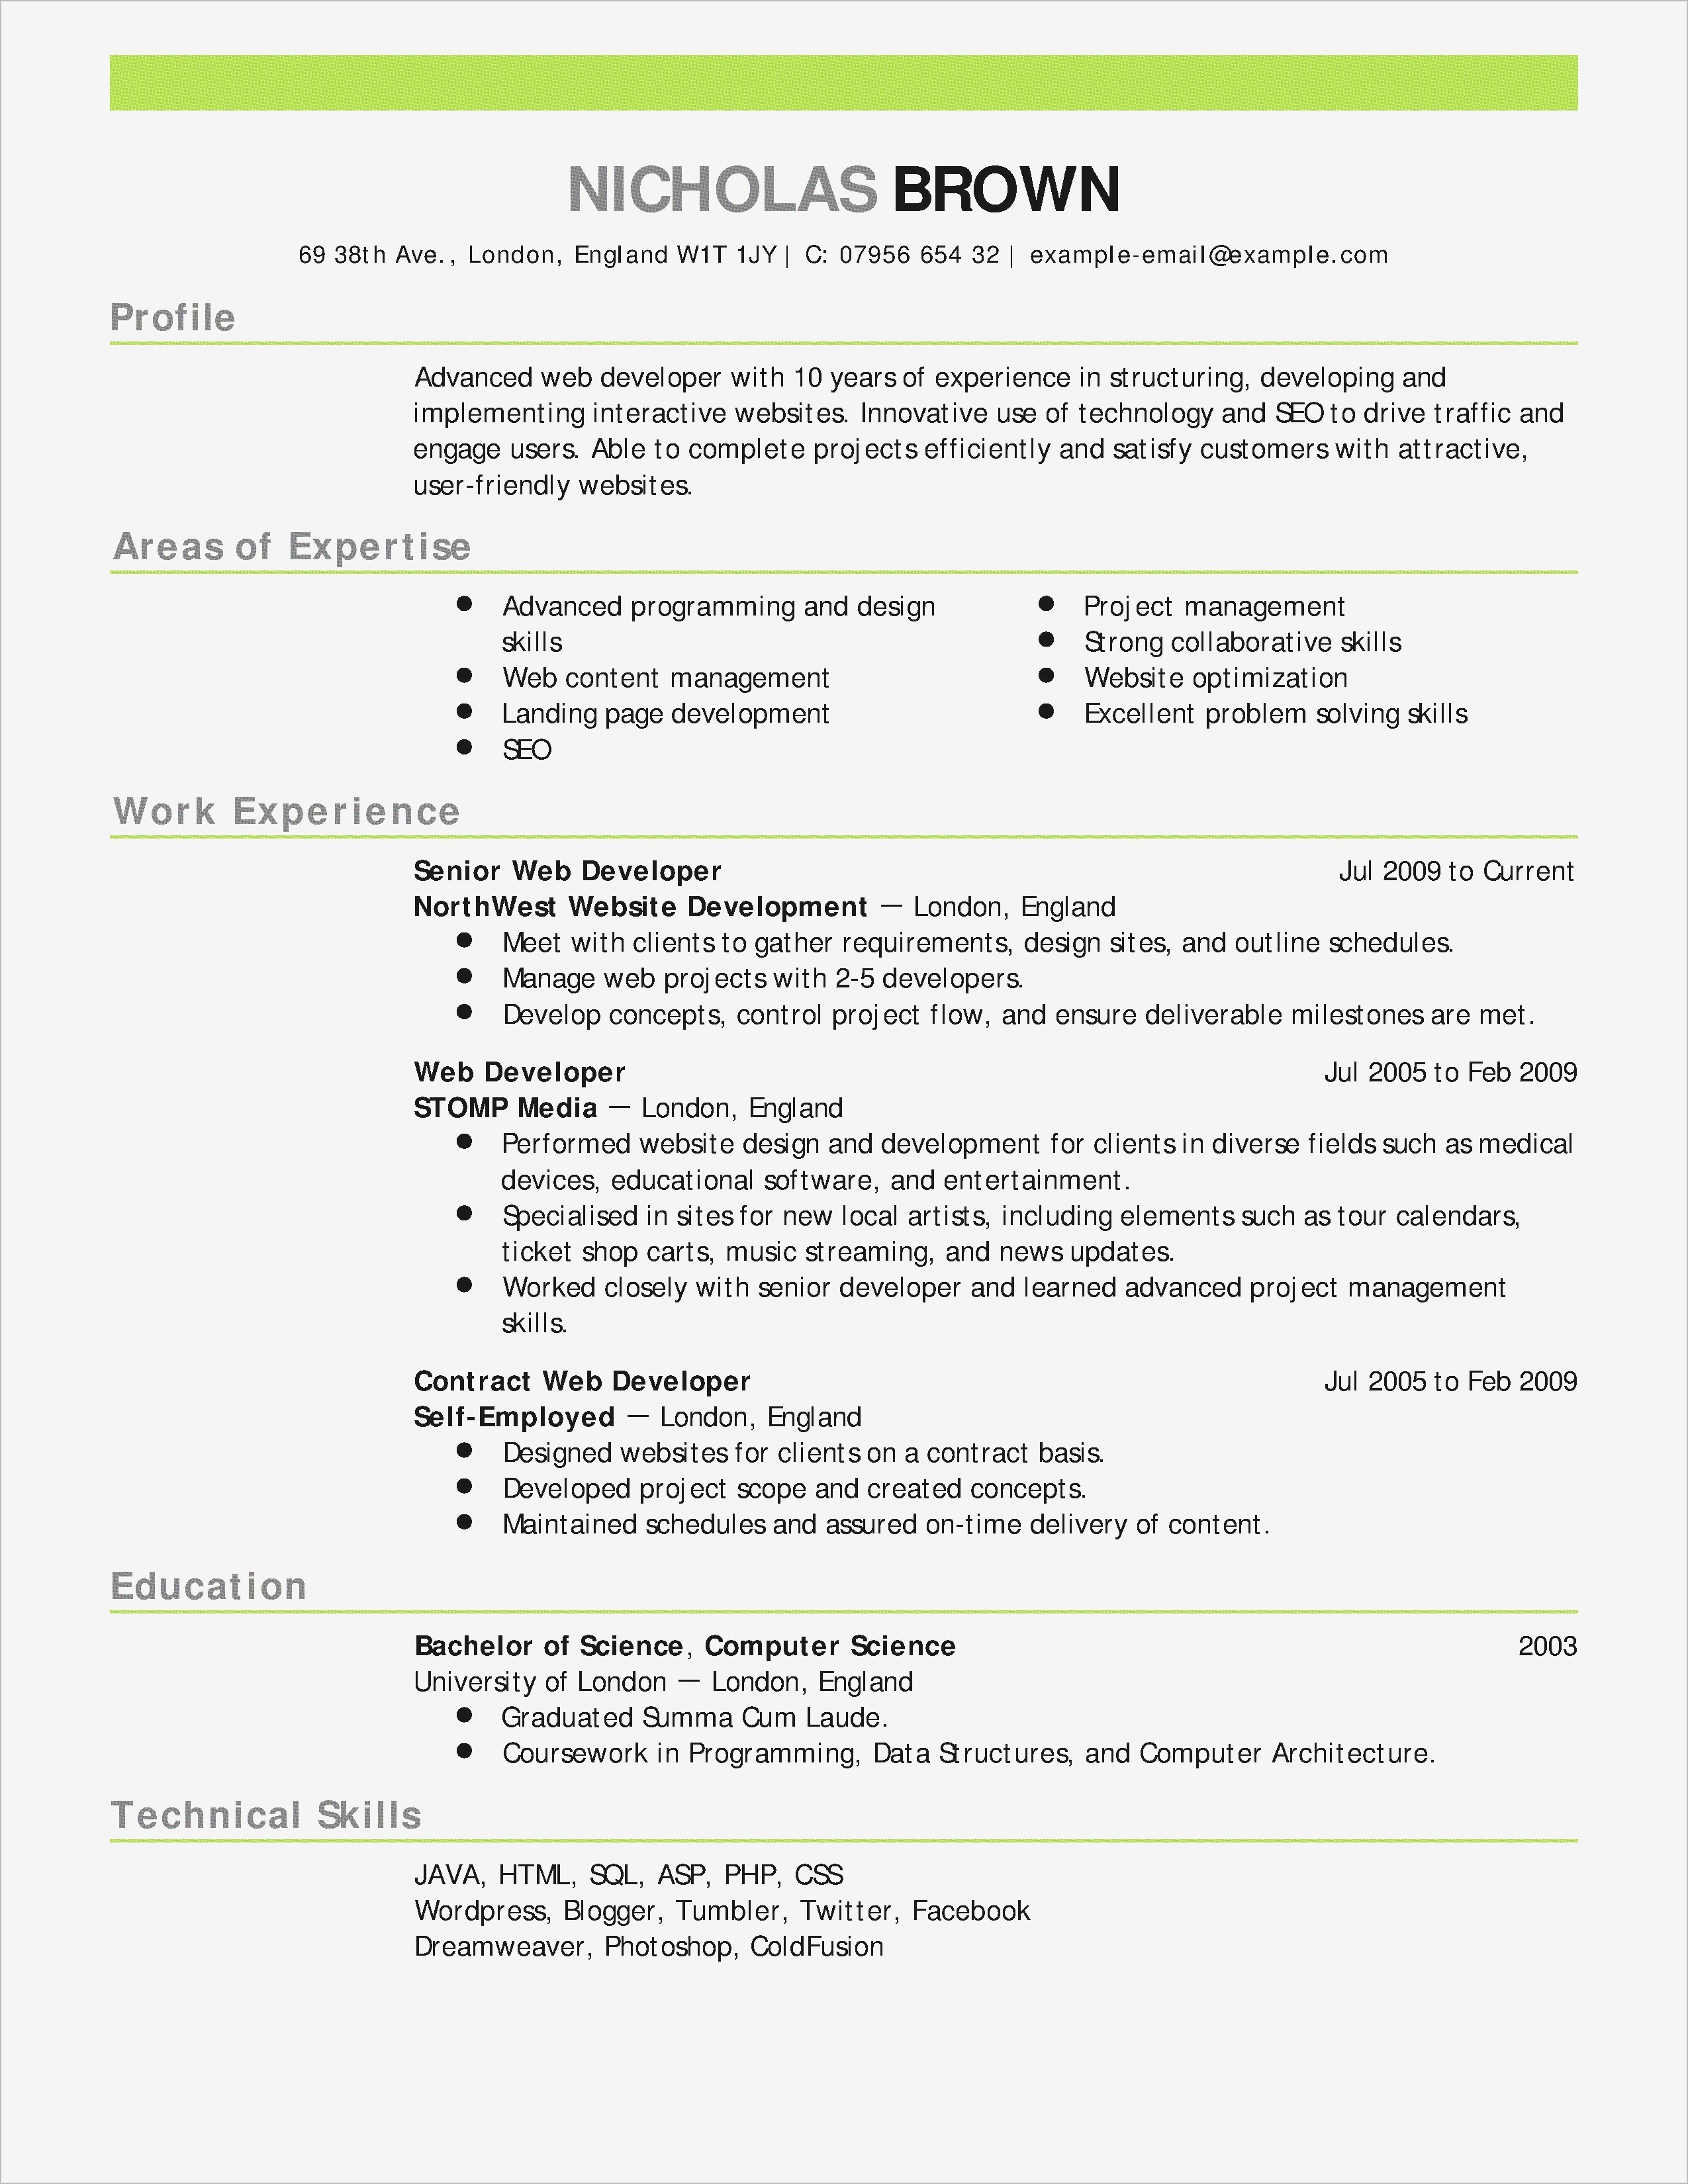 Executive Resume Writing Service - top Rated Resume Writing Services Unique Awesome Collection